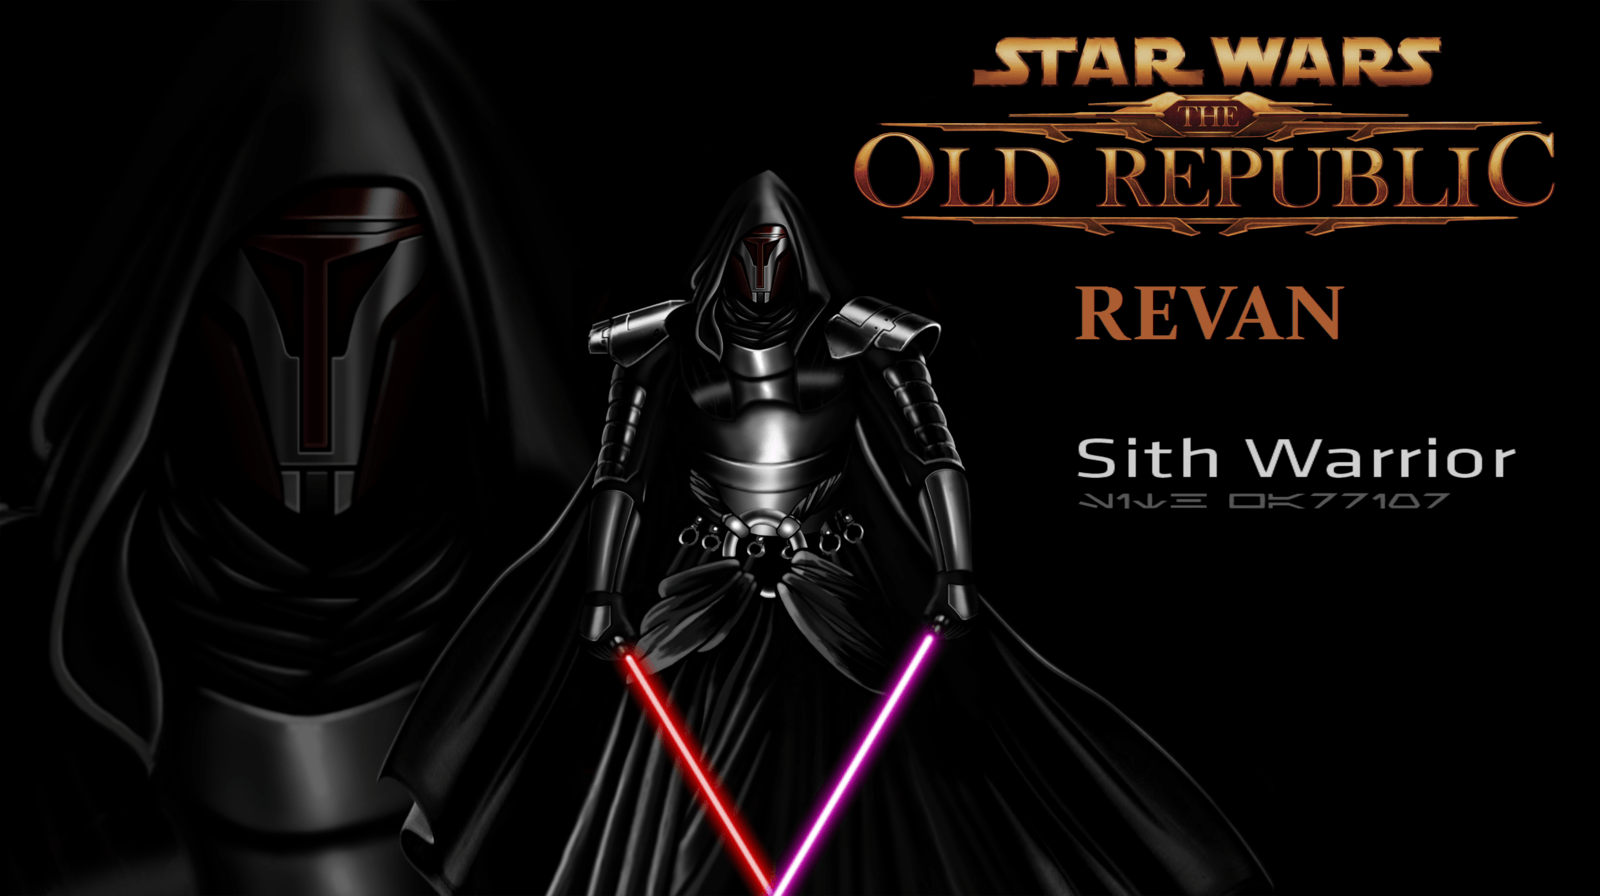 The Old Republic wallpaper Revan by zardis1965 on DeviantArt